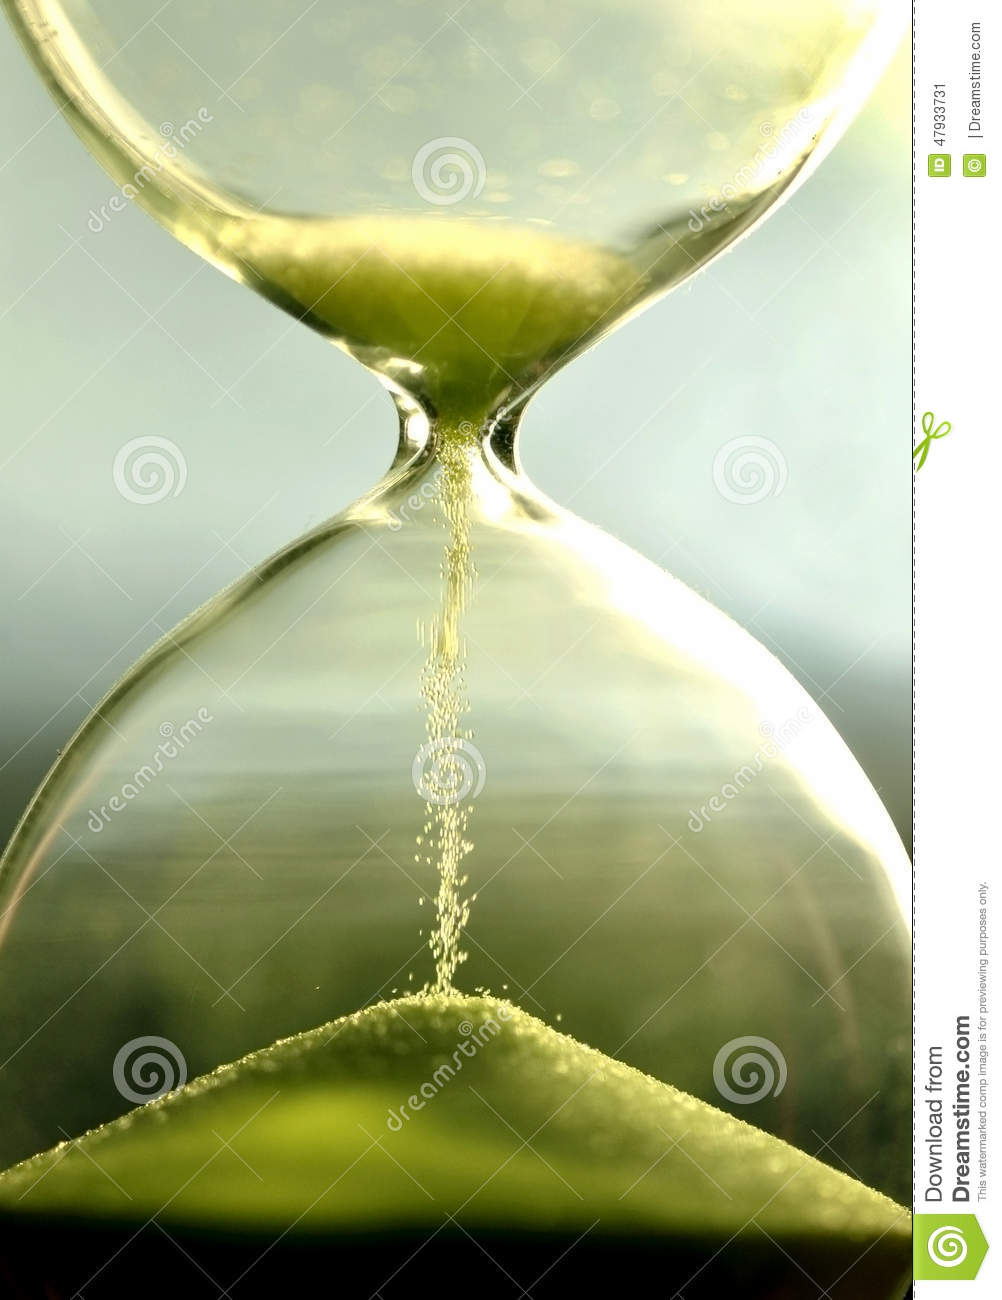 Close Up Hourglass Counting Down Time With Sand View Stock